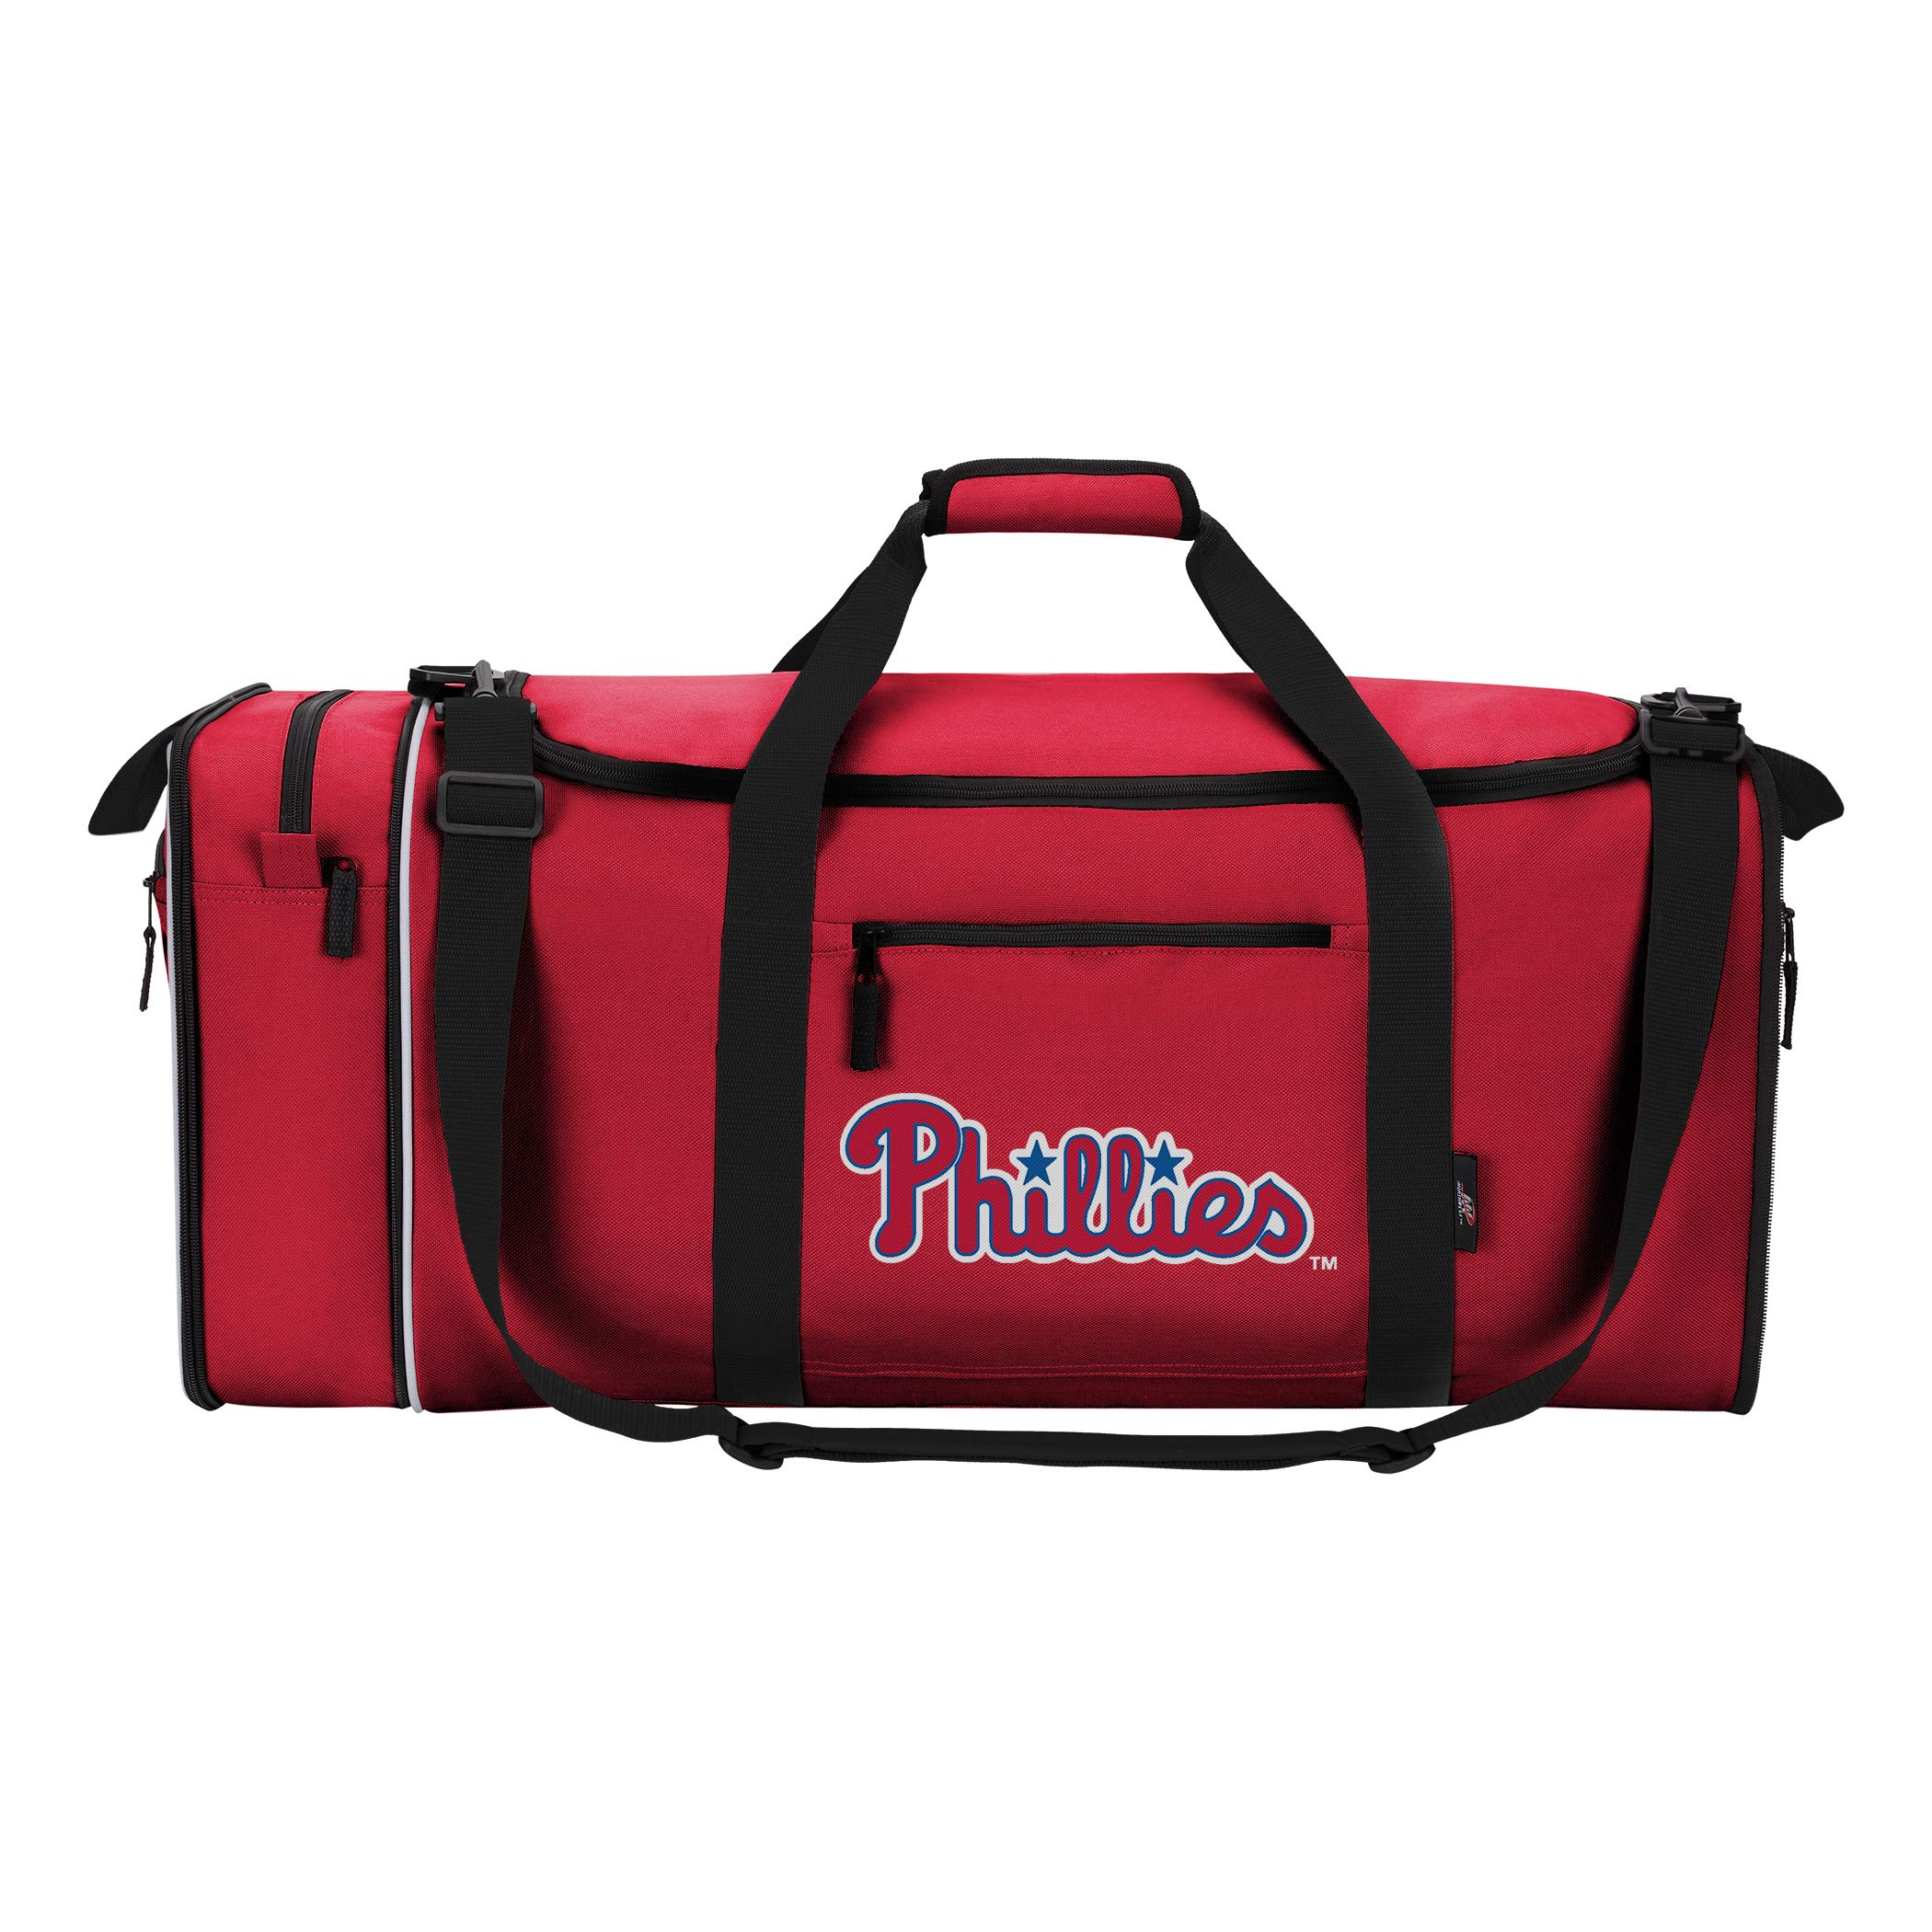 The Northwest Company Officially Licensed MLB Philadelphia Phillies Steal Duffel Bag, 28'' x 11'' x 12''